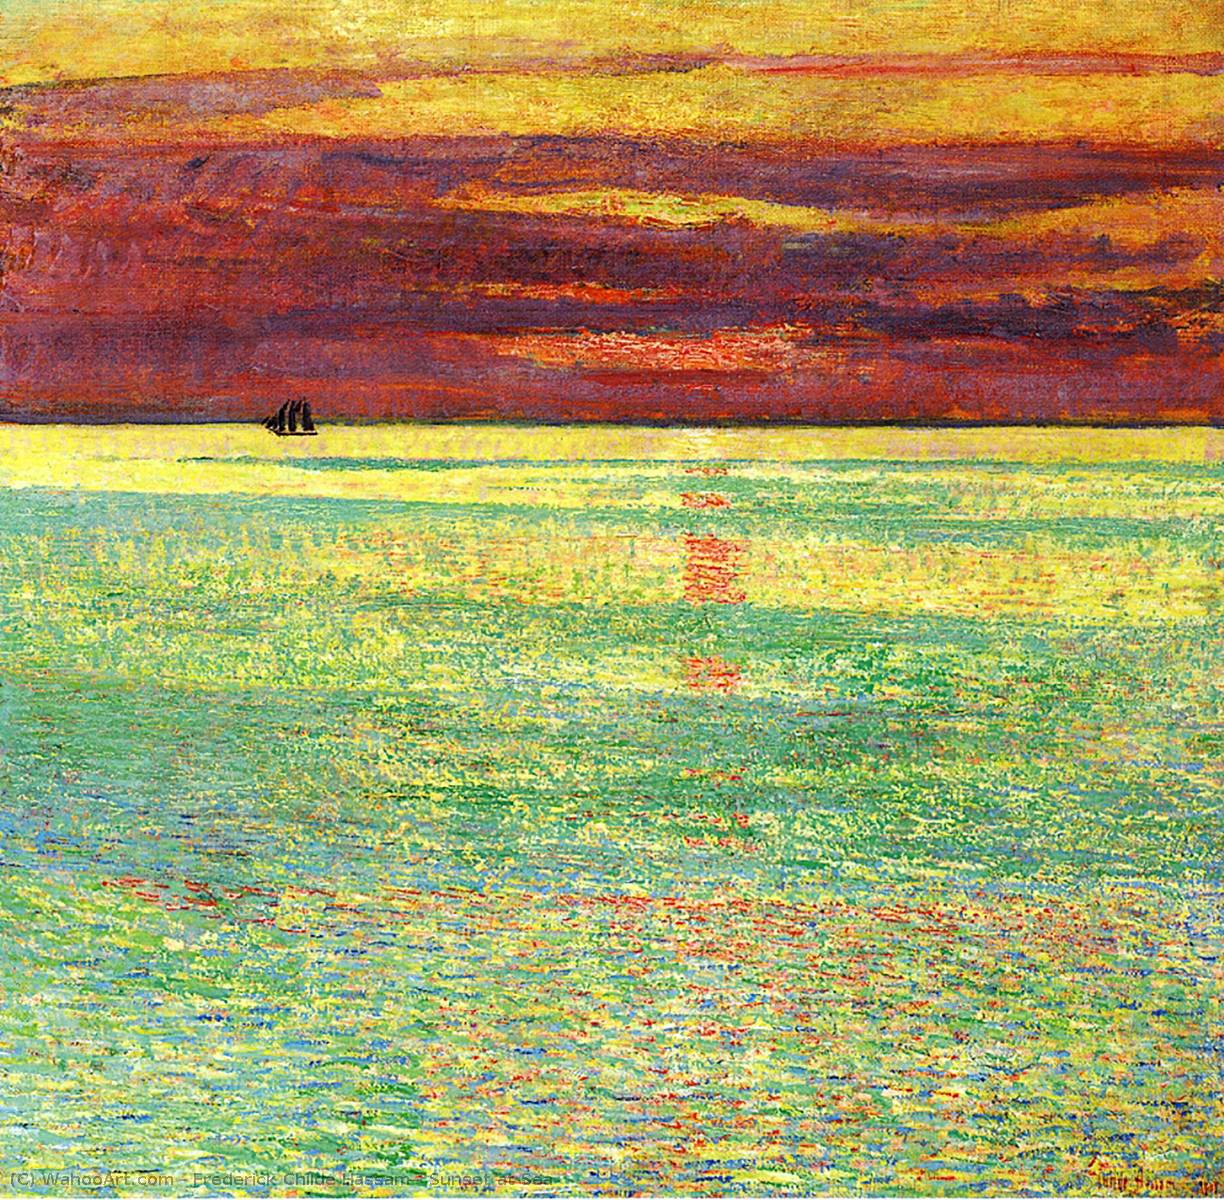 Order Paintings Reproductions | Sunset at Sea by Frederick Childe Hassam | Most-Famous-Paintings.com